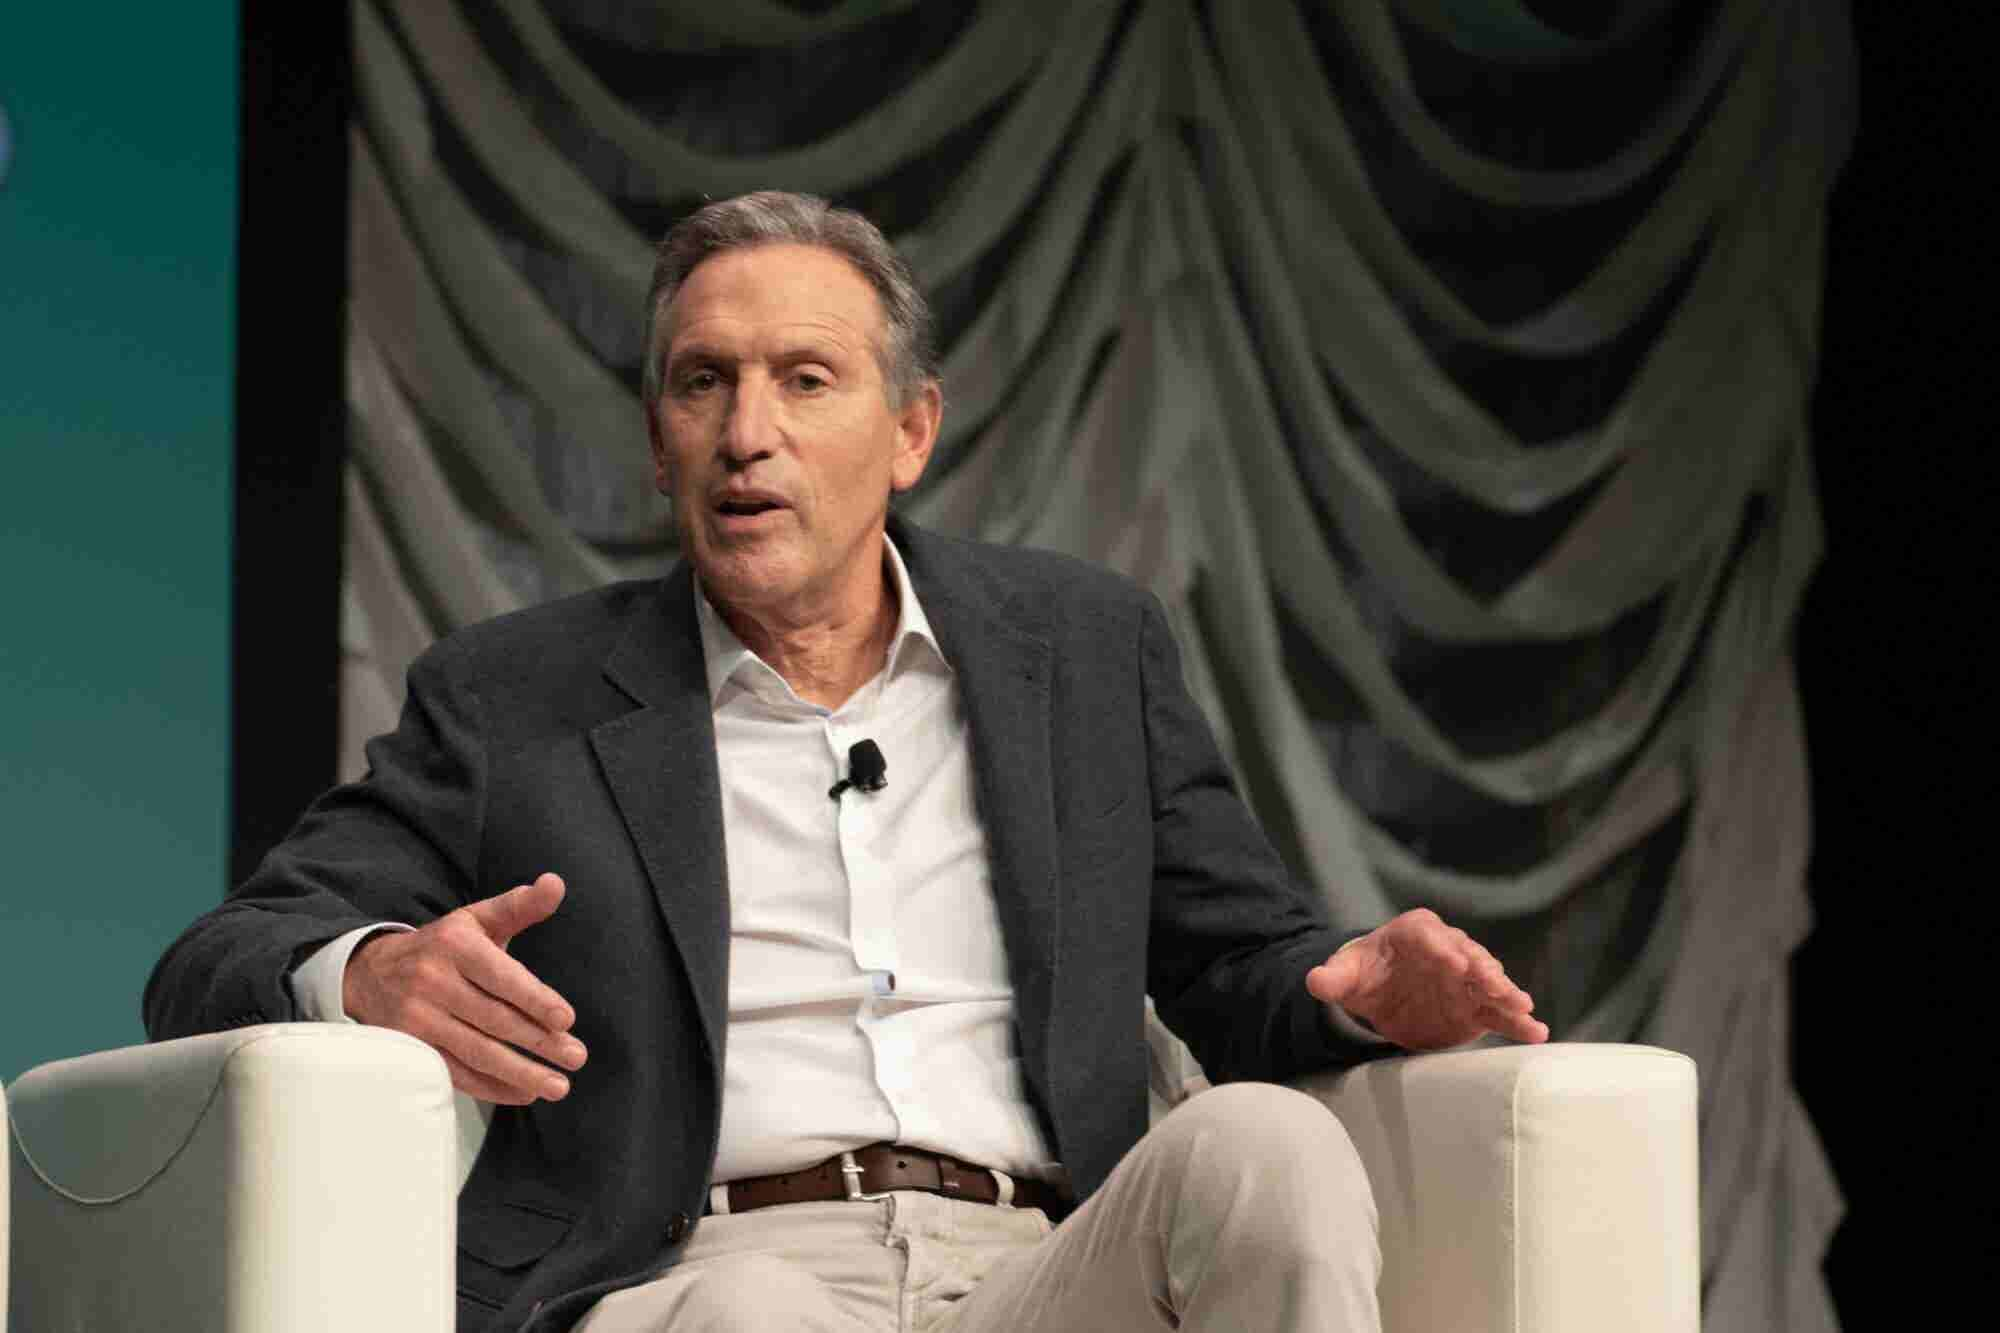 Exclusive: Former Starbucks CEO Howard Schultz Disputes the Polling on His Chances for Success at the Presidency